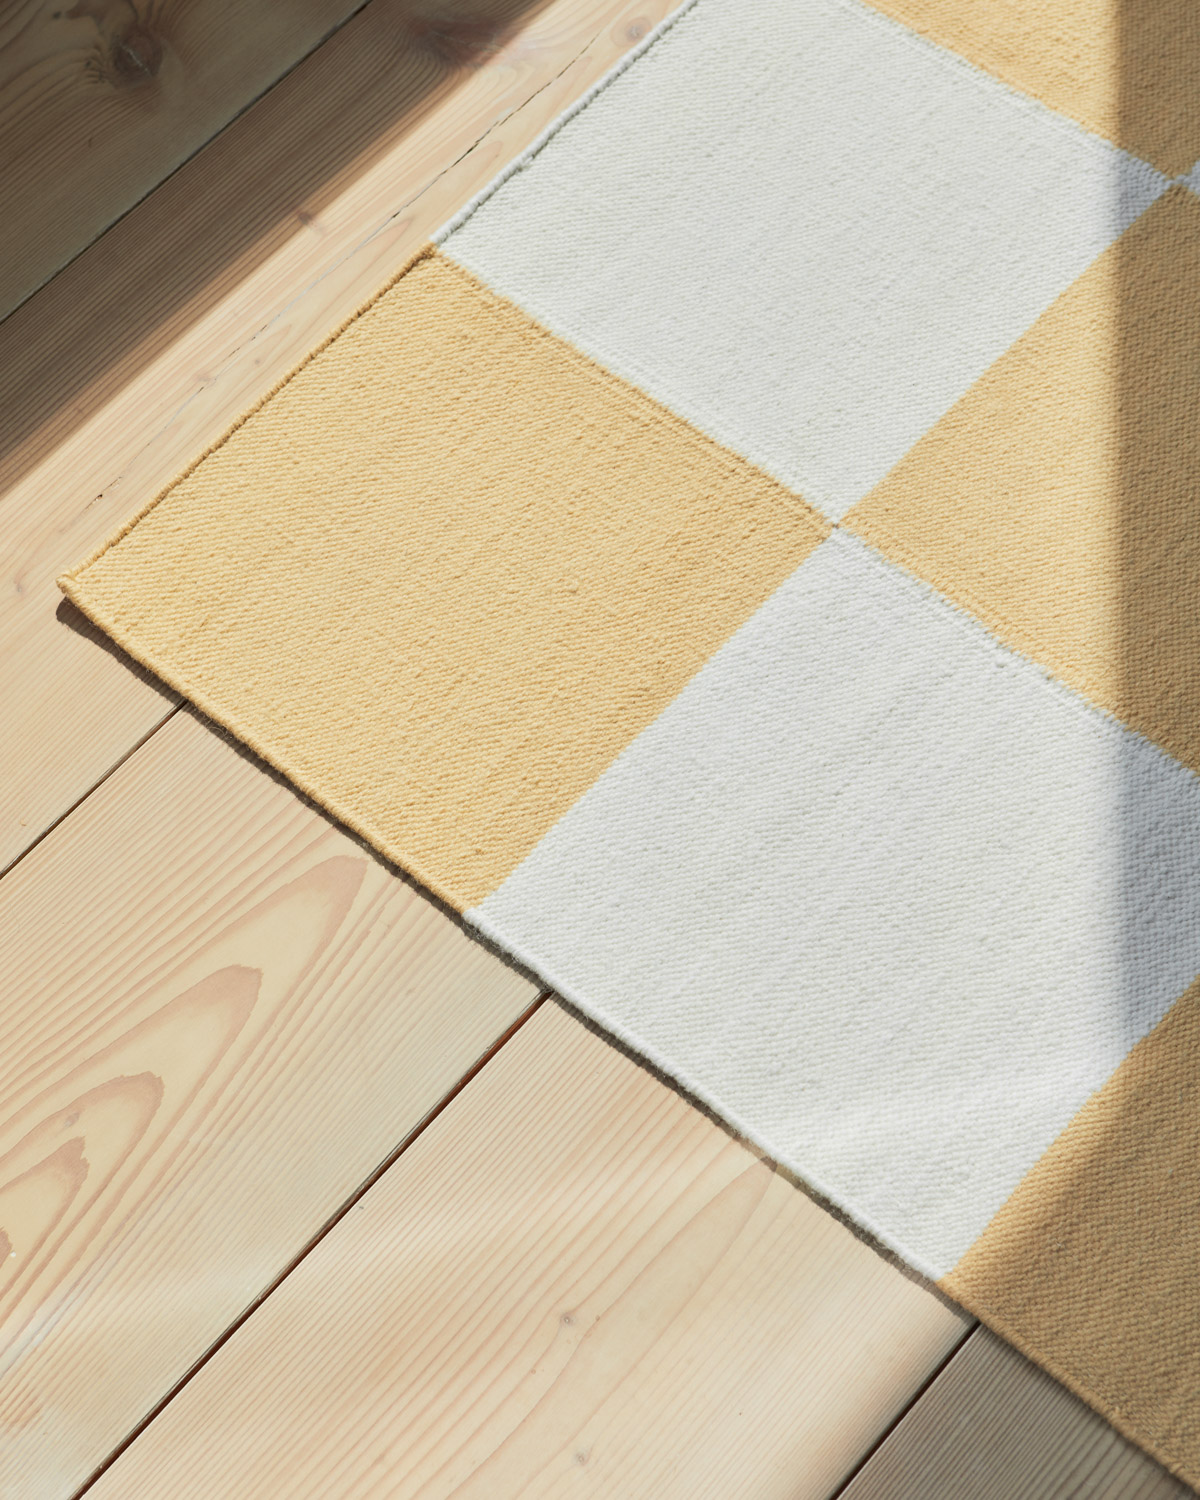 Close up of the yellow square flatweave rug